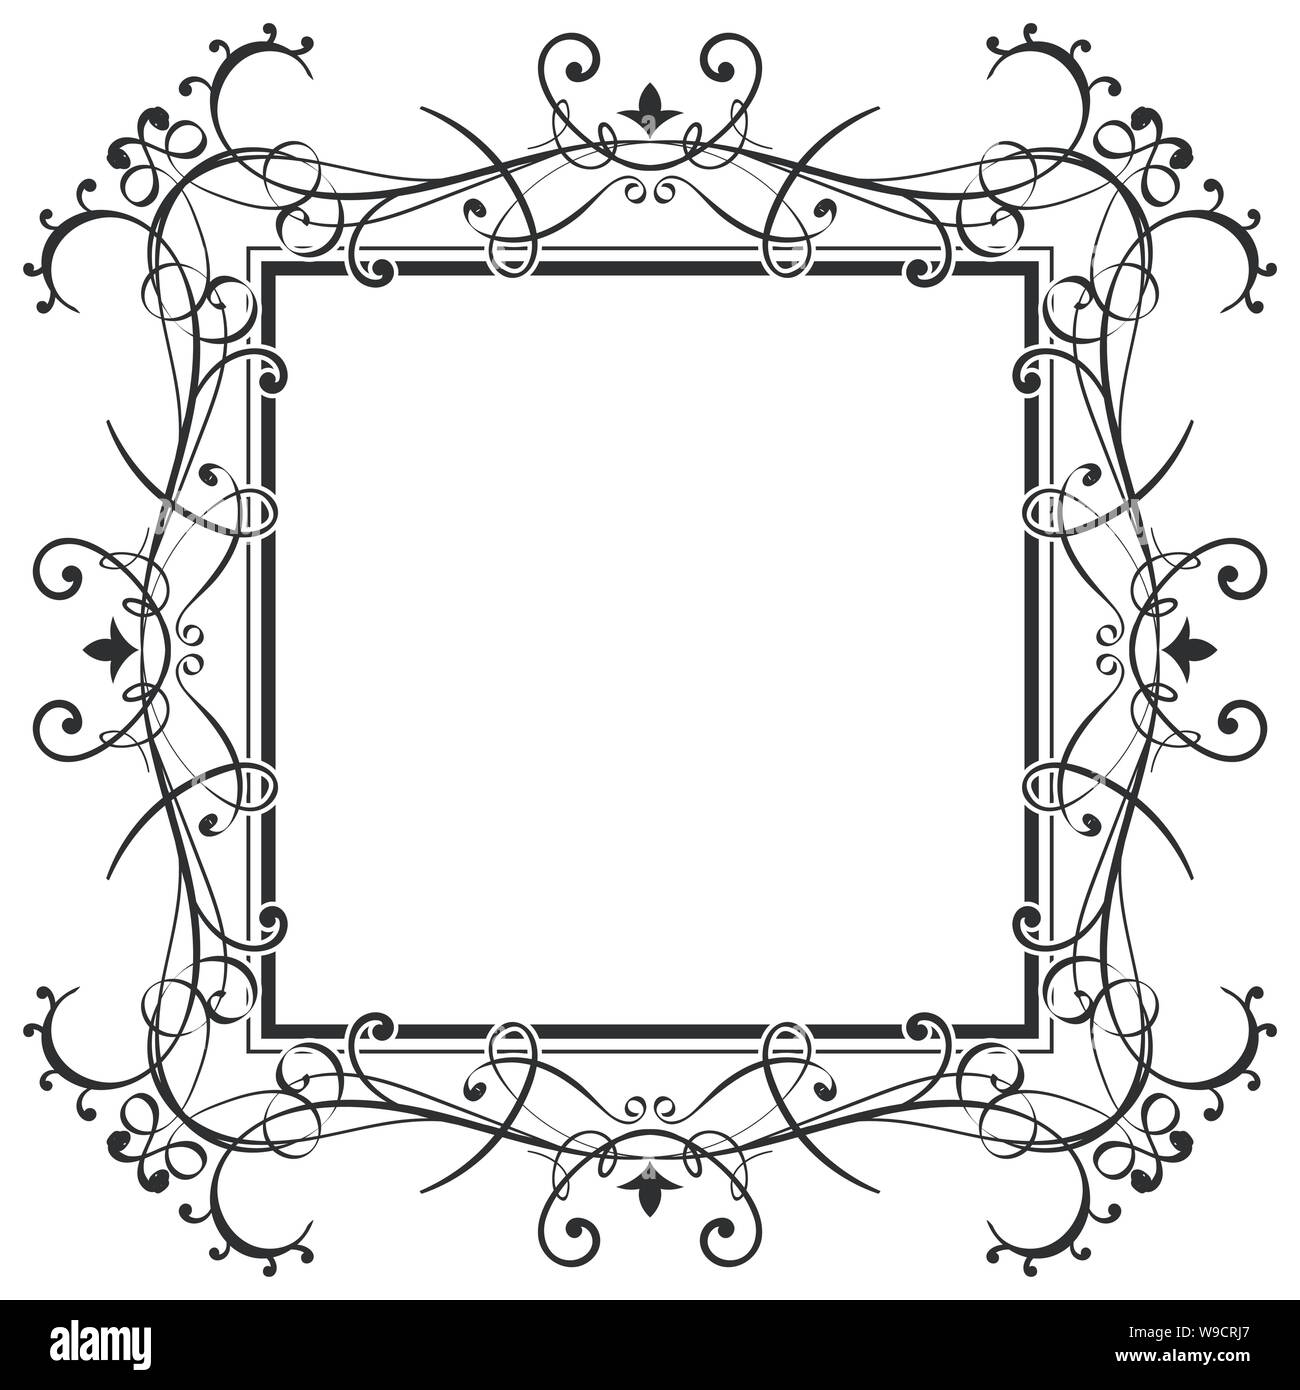 Floral filigree frame. Decorative design element Stock Vector